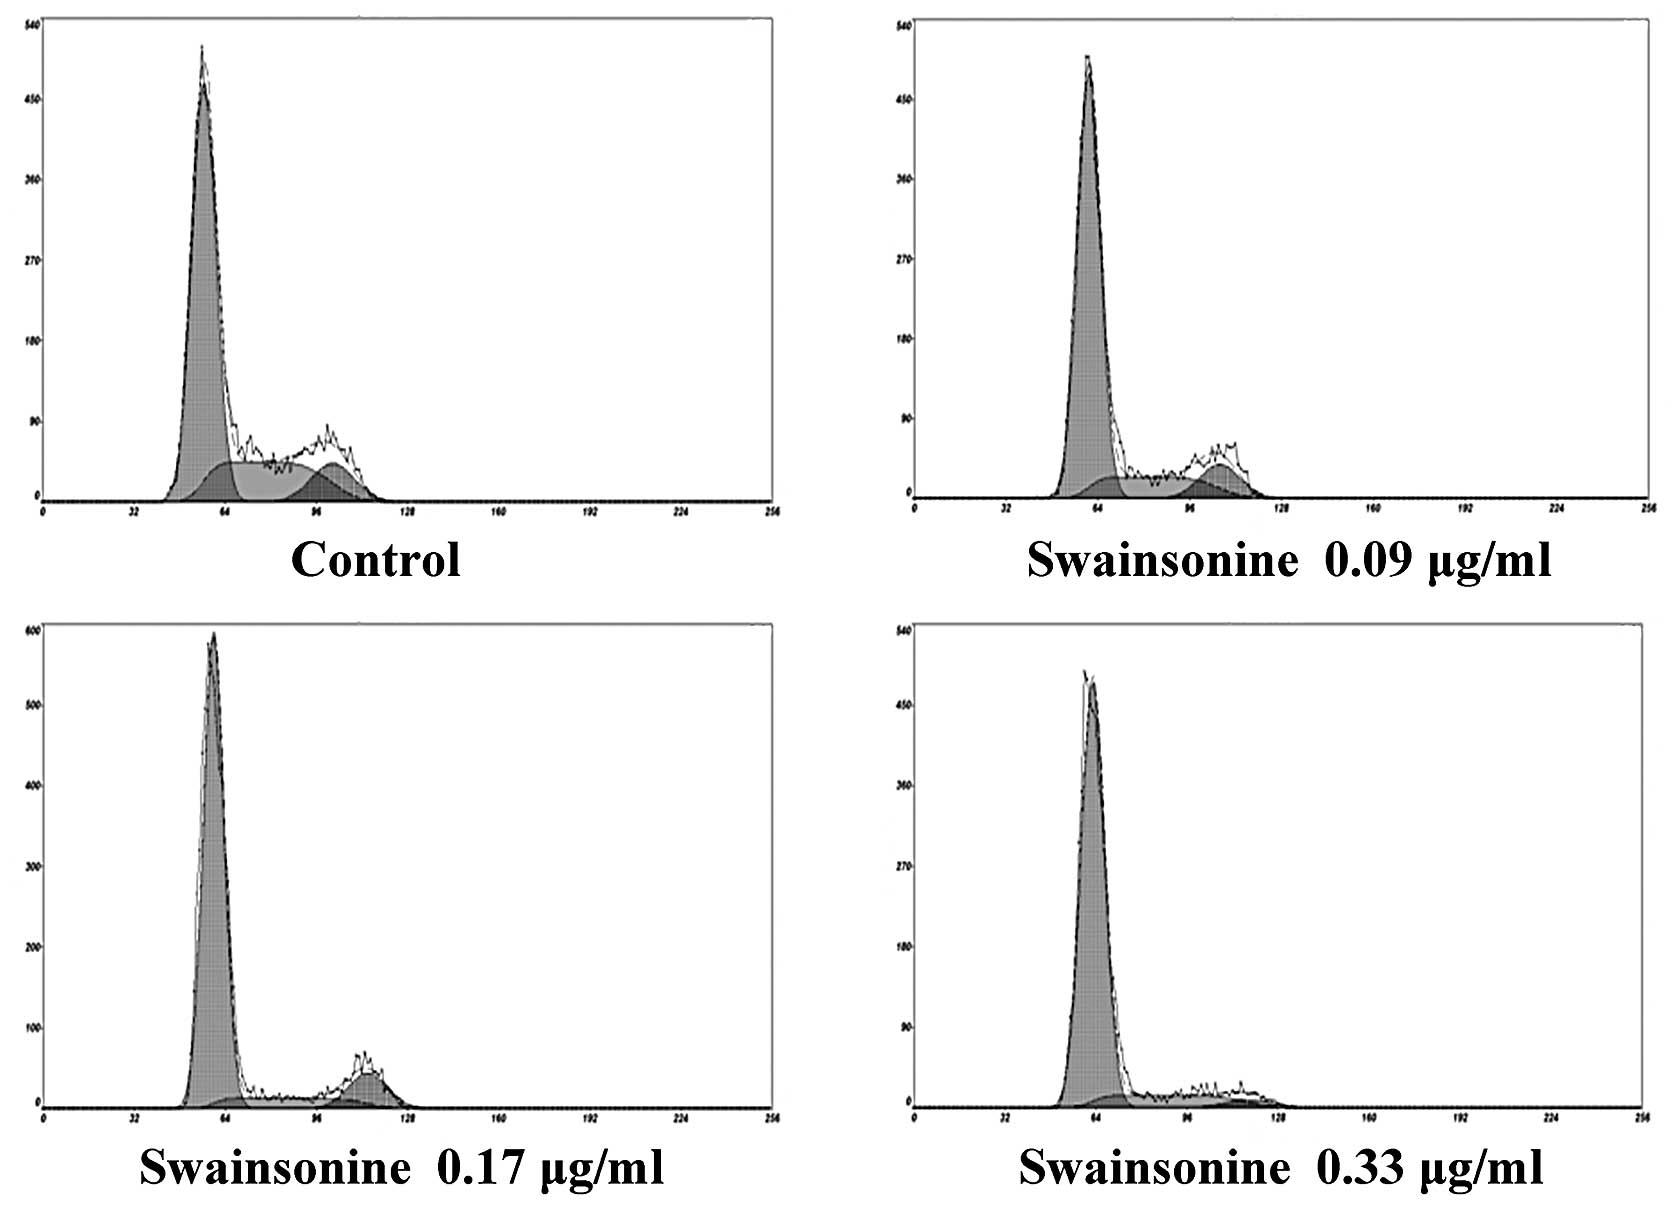 Swainsonine Inhibits Growth And Potentiates The Cytotoxic